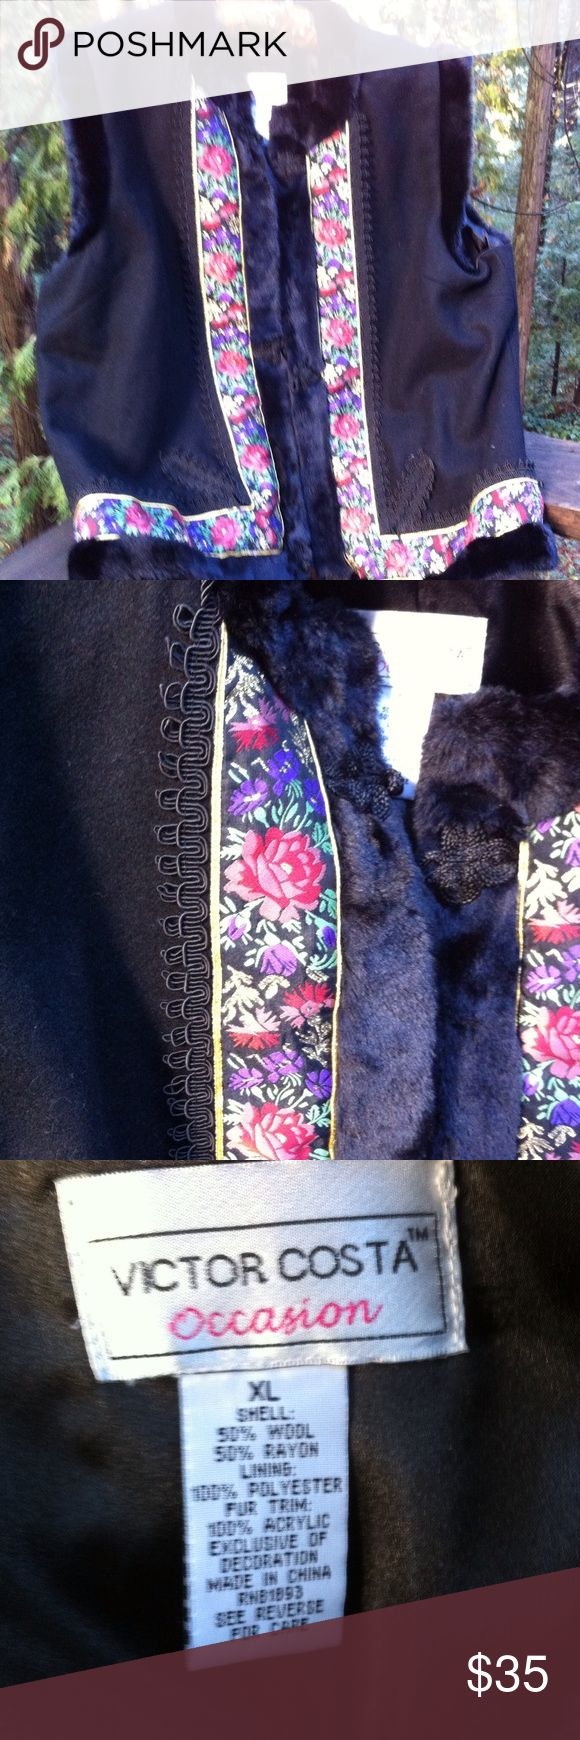 Black wool dressy vest Soft black wool vest end he'd in fax fur , embellished with accents of black braiding , gold lama and floral print, fully lined and light weight , great for layering. A 'Kristens Find' posh on girlfriend;) victor costa Jackets & Coats Vests